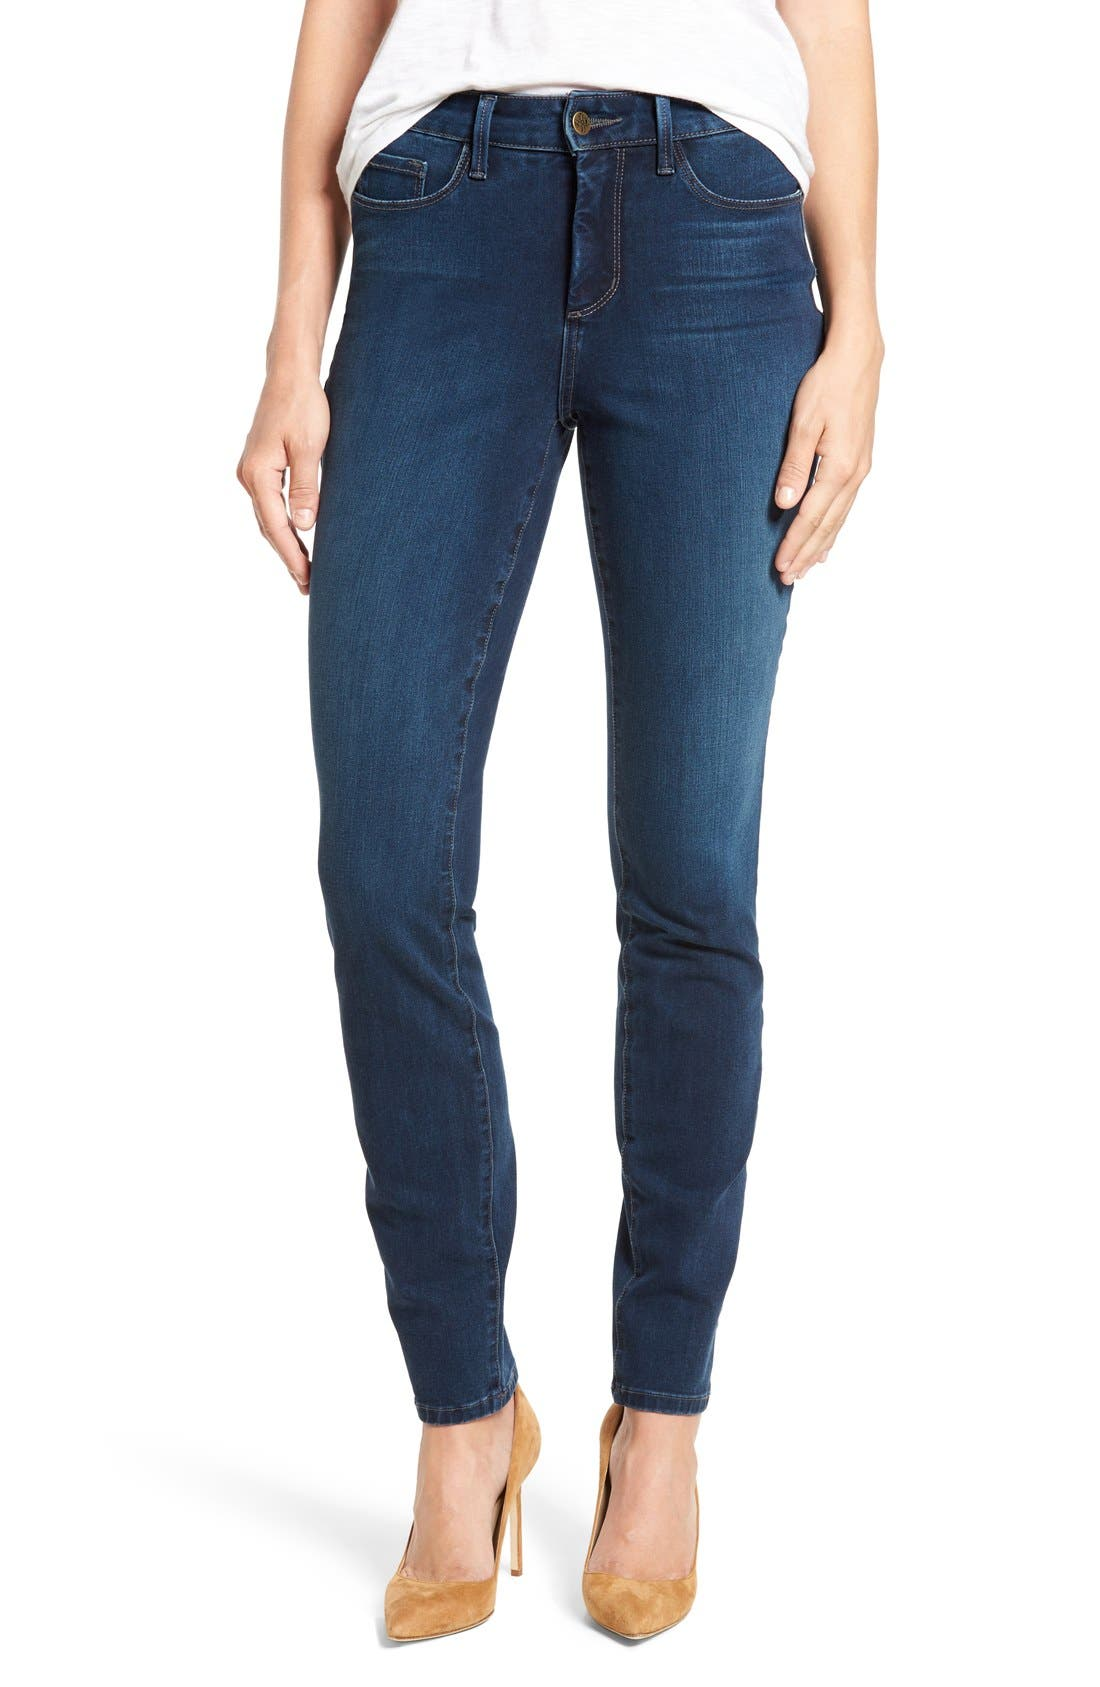 Alternate Image 1 Selected - NYDJ Alina Colored Stretch Skinny Jeans (Regular & Petite)